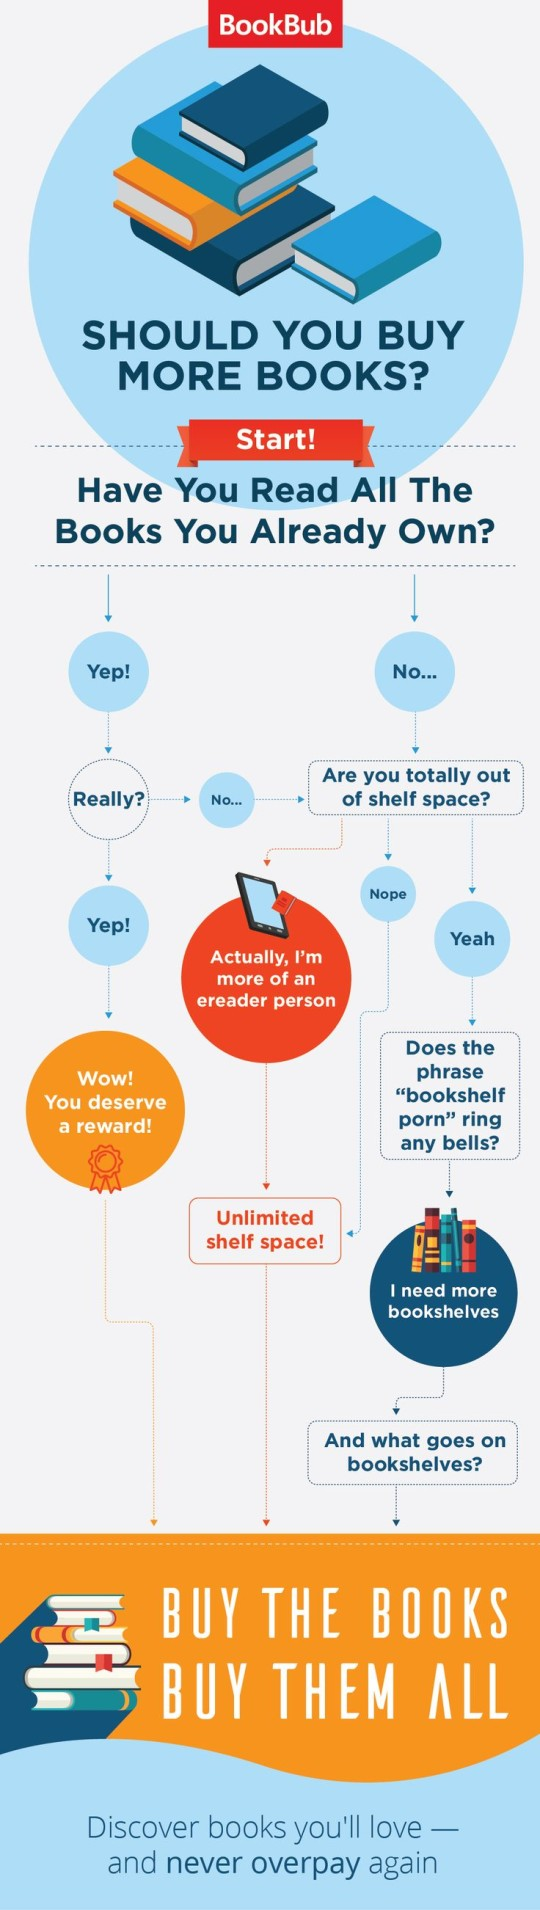 Should I buy more books #infographic #flowchart